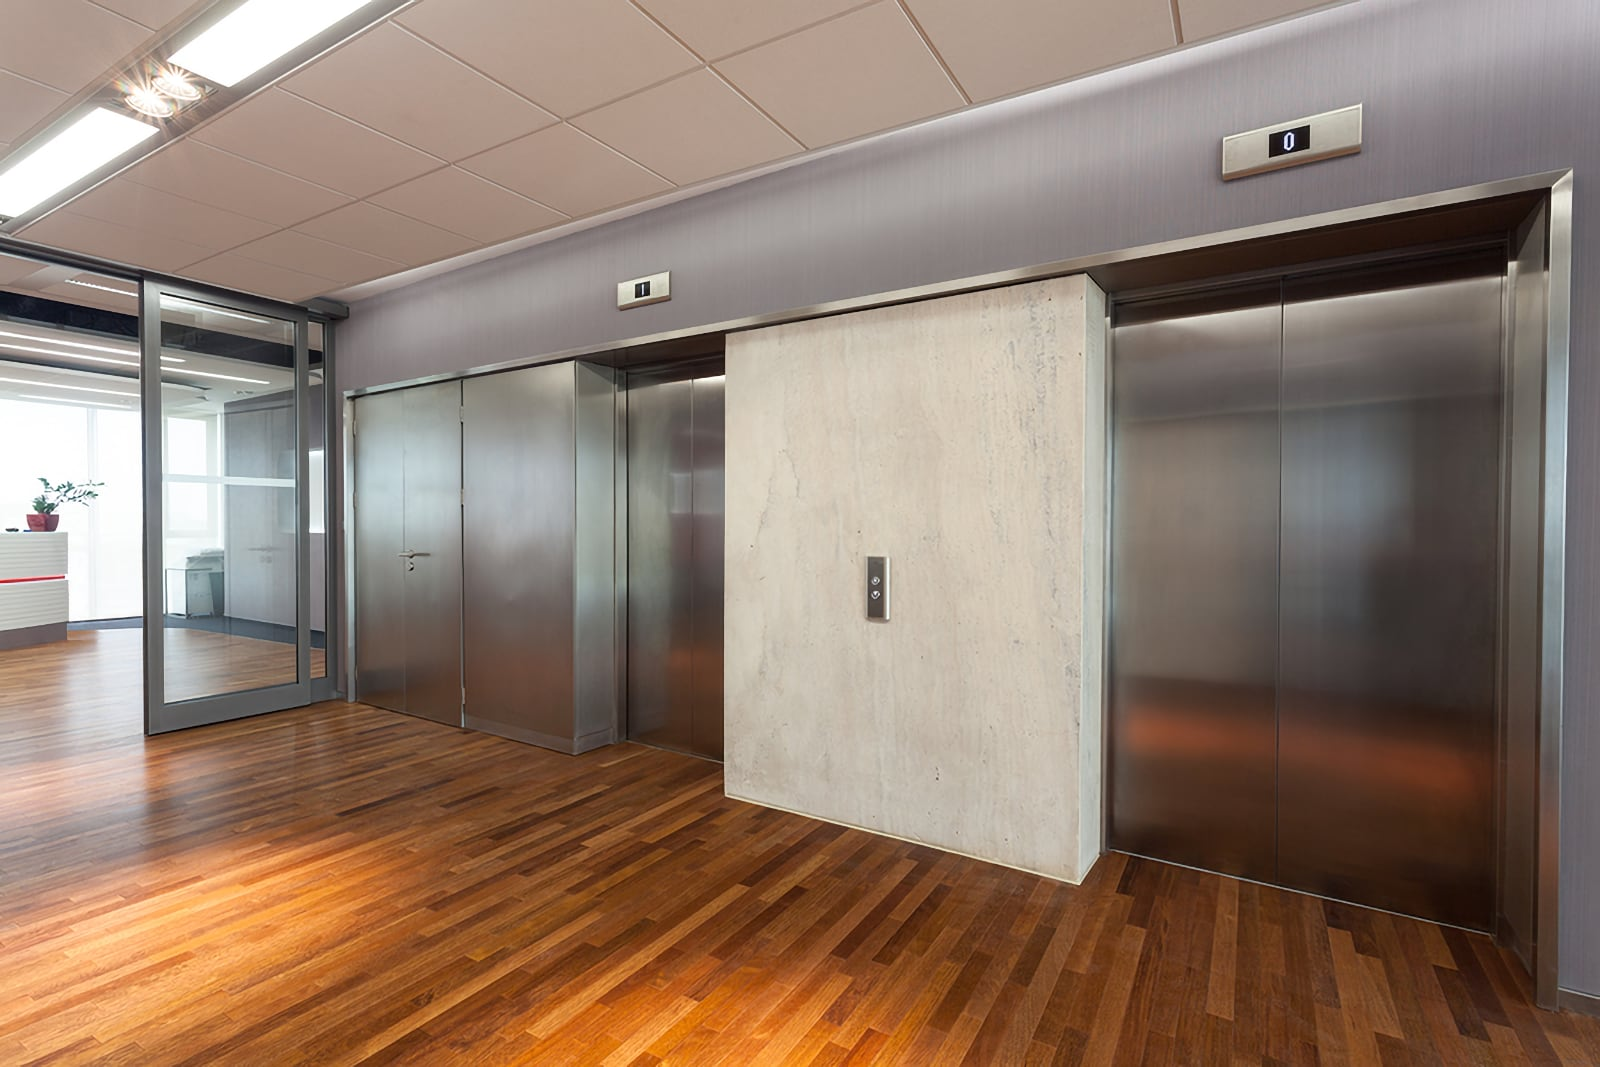 Photo of hall in the office facing the lift doors